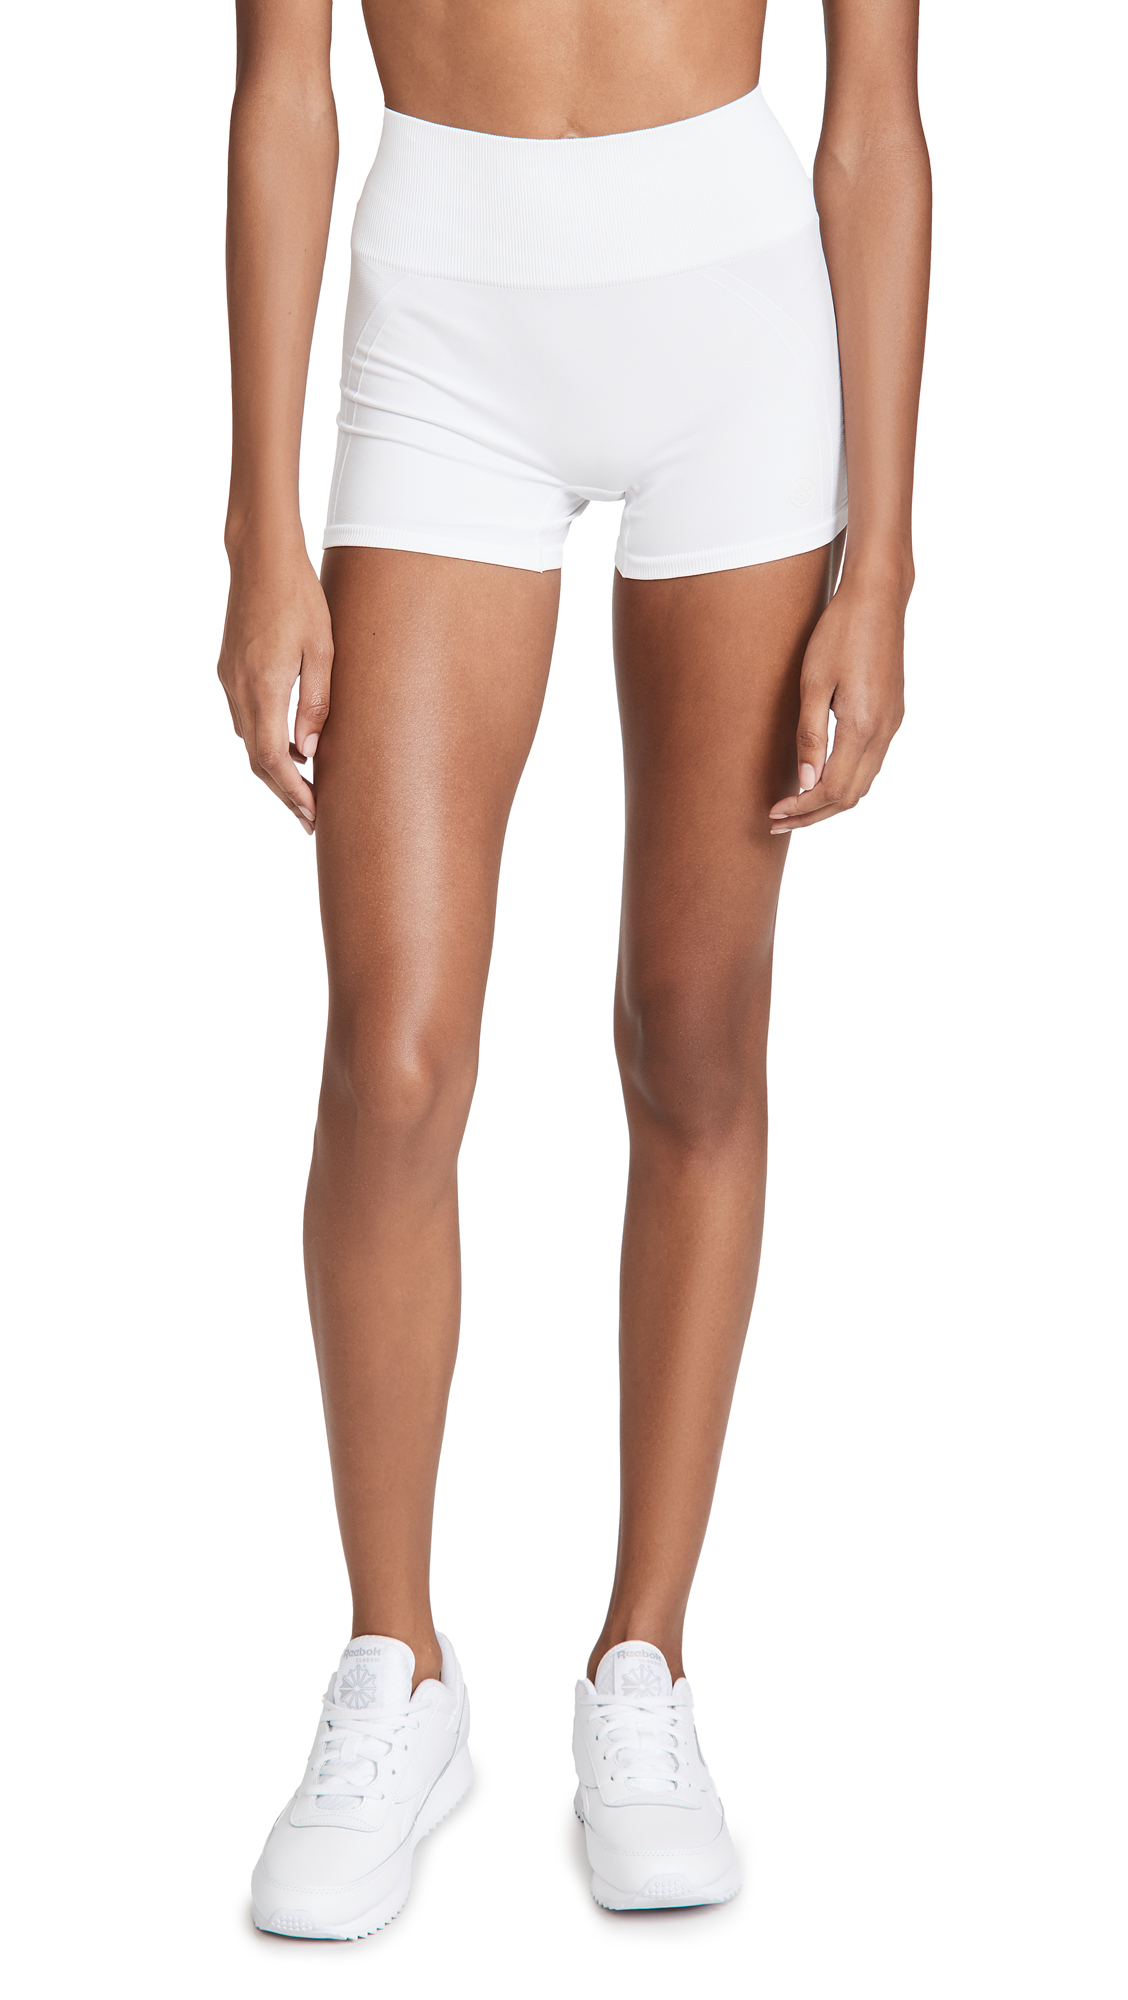 Tory Sport High-Rise Seamless Shorts